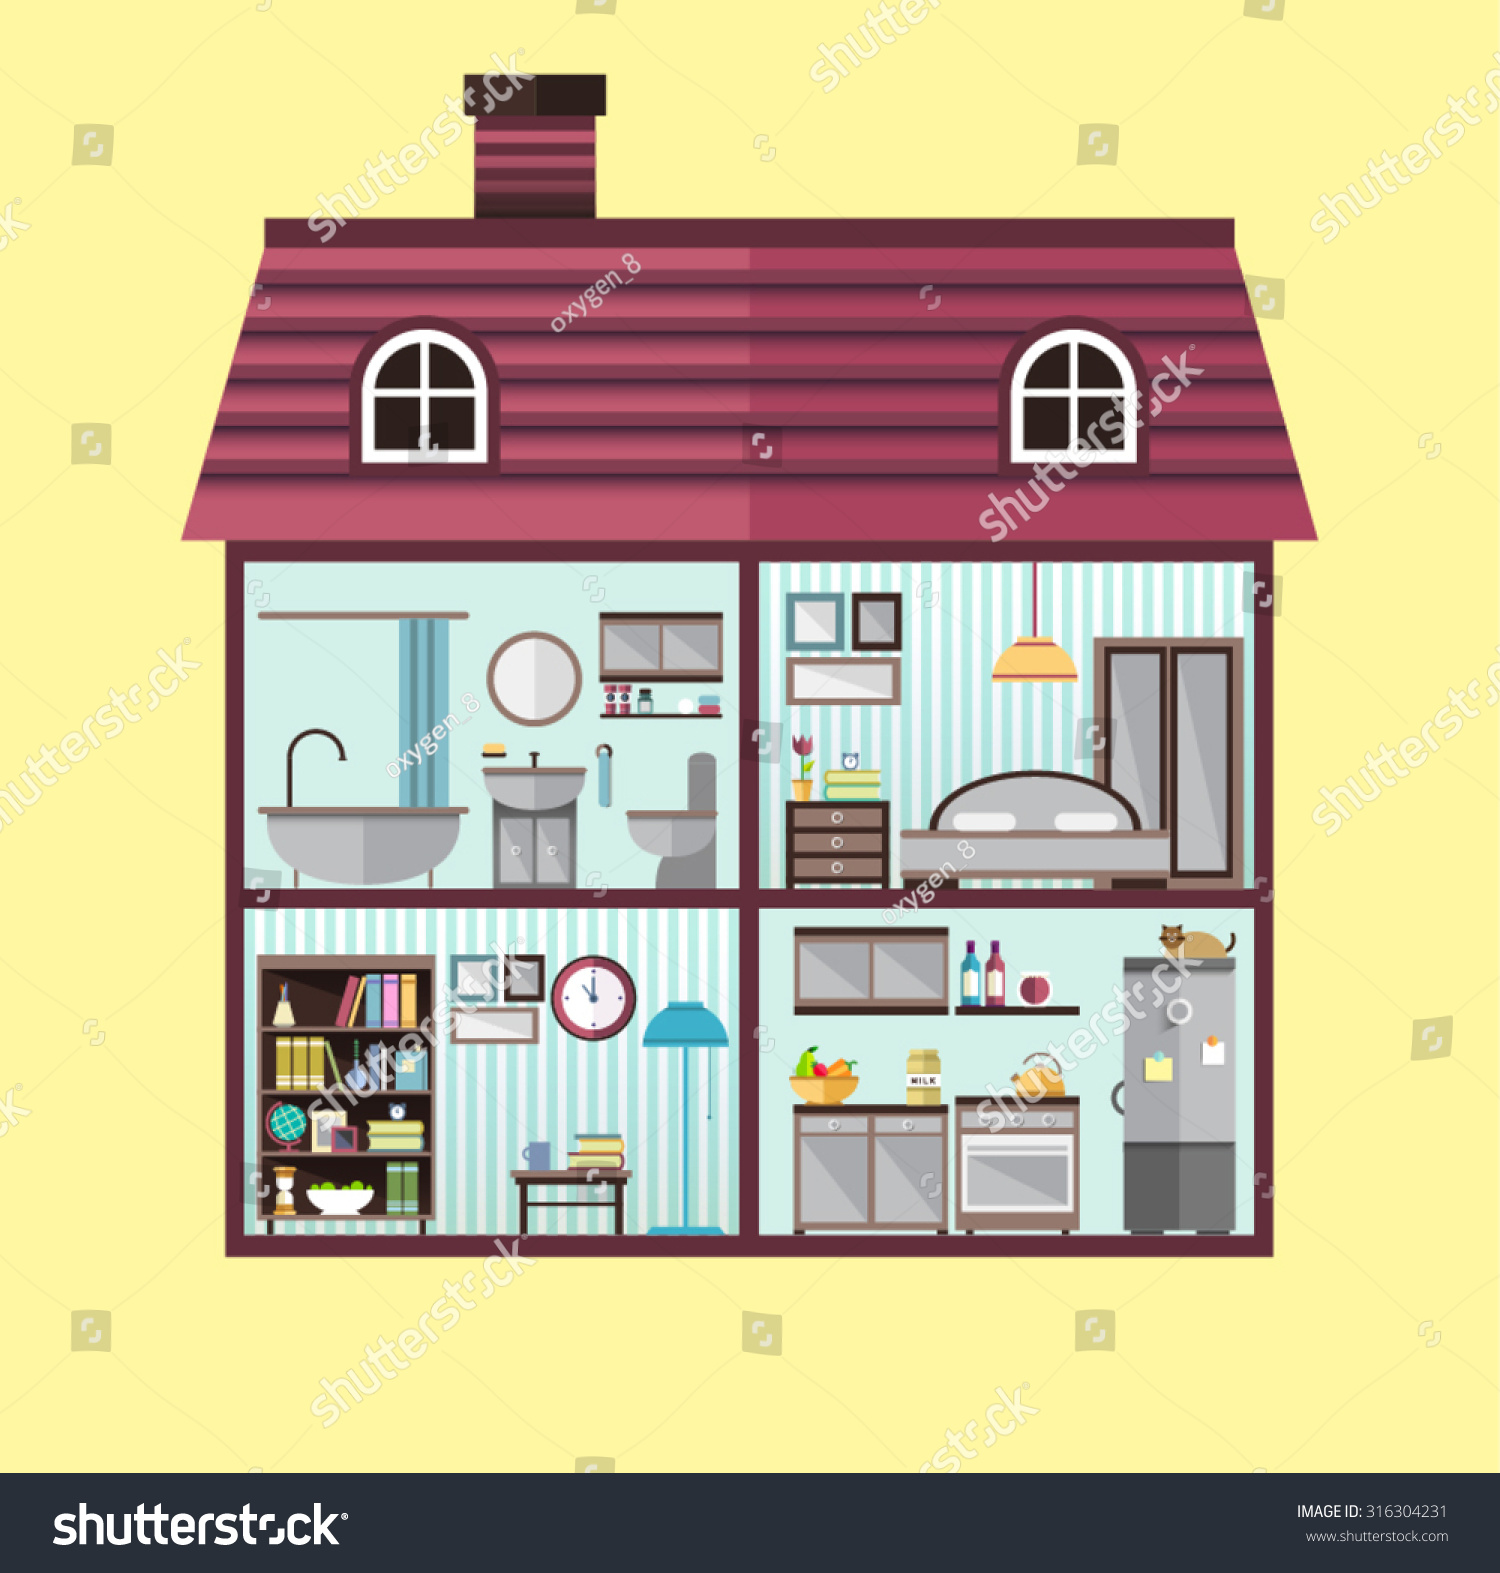 House cut detailed modern house interior stock vector 316304231 shutterstock - House interior images ...